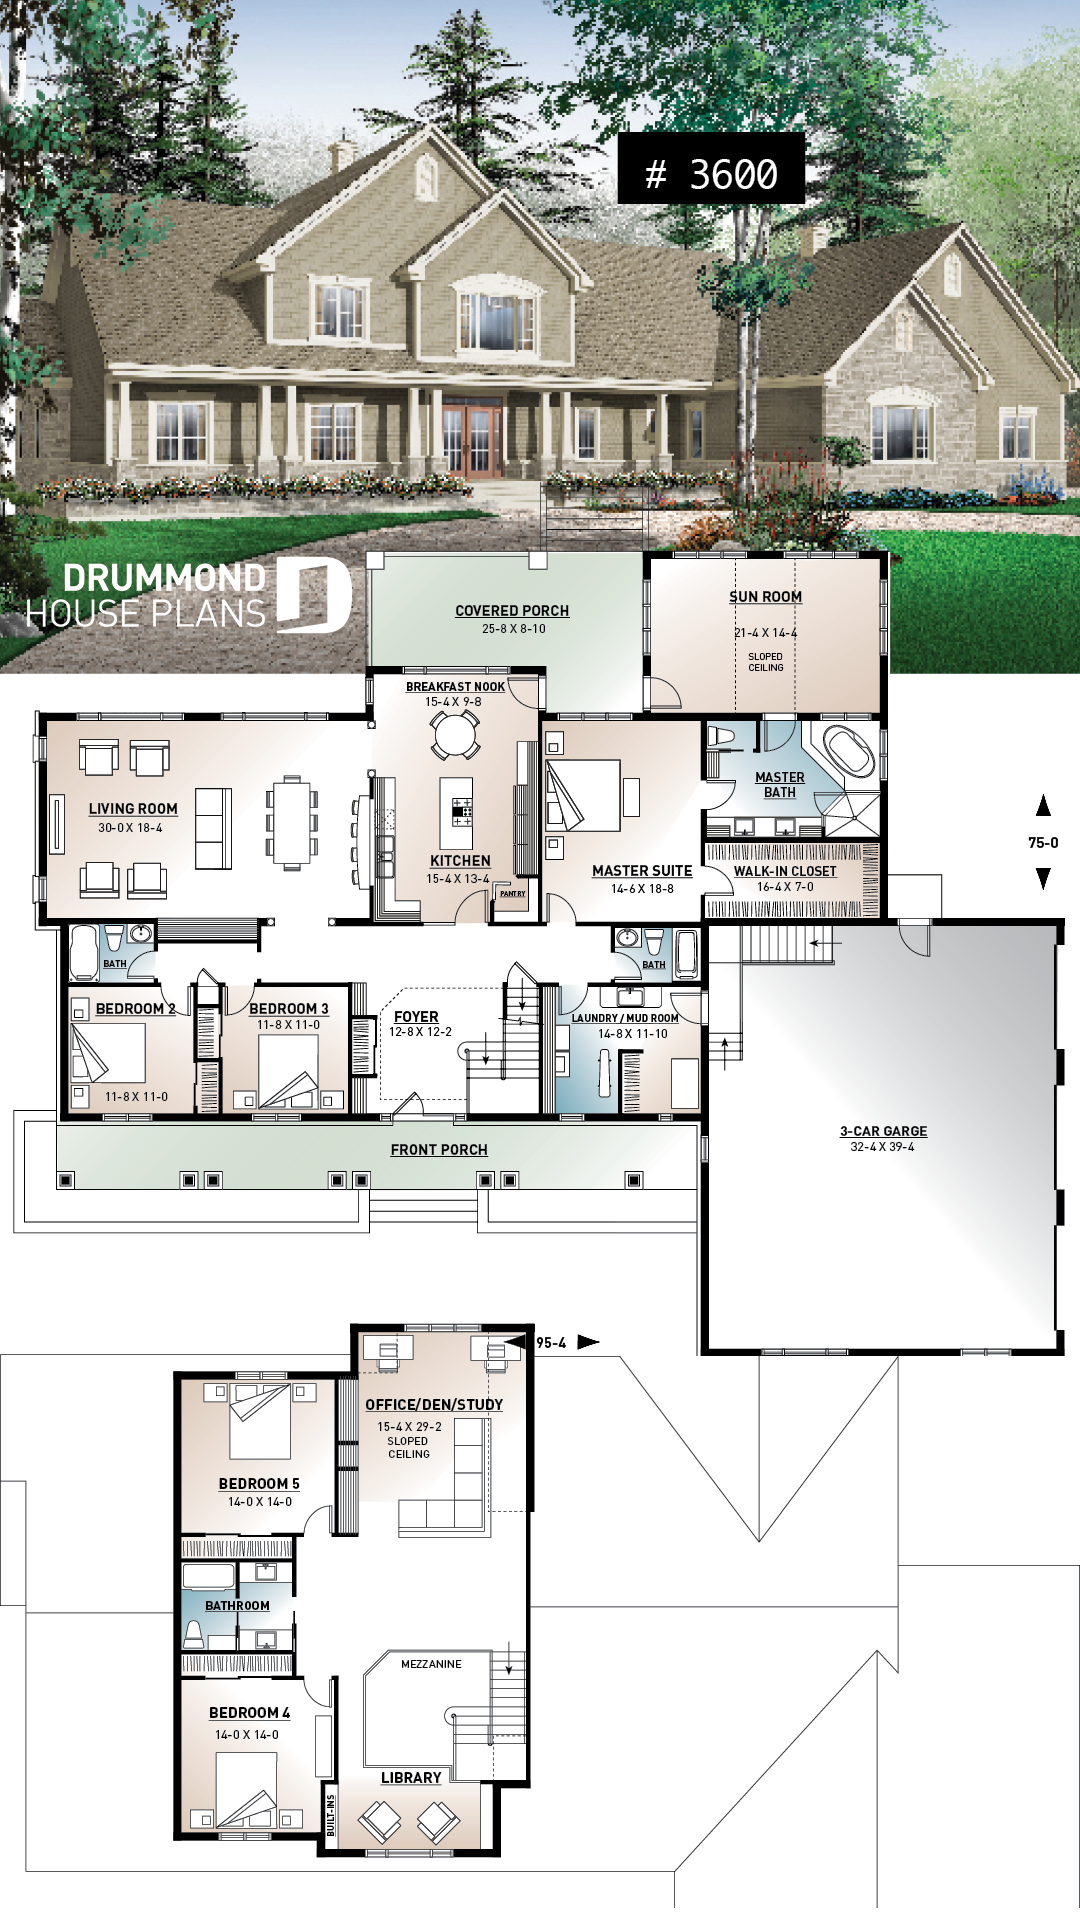 Discover The Plan 3600 Robertsdale Which Will Please You For Its 5 6 Bedrooms And For Its Ranch Styles Ranch House Plans New House Plans Bungalow House Plans